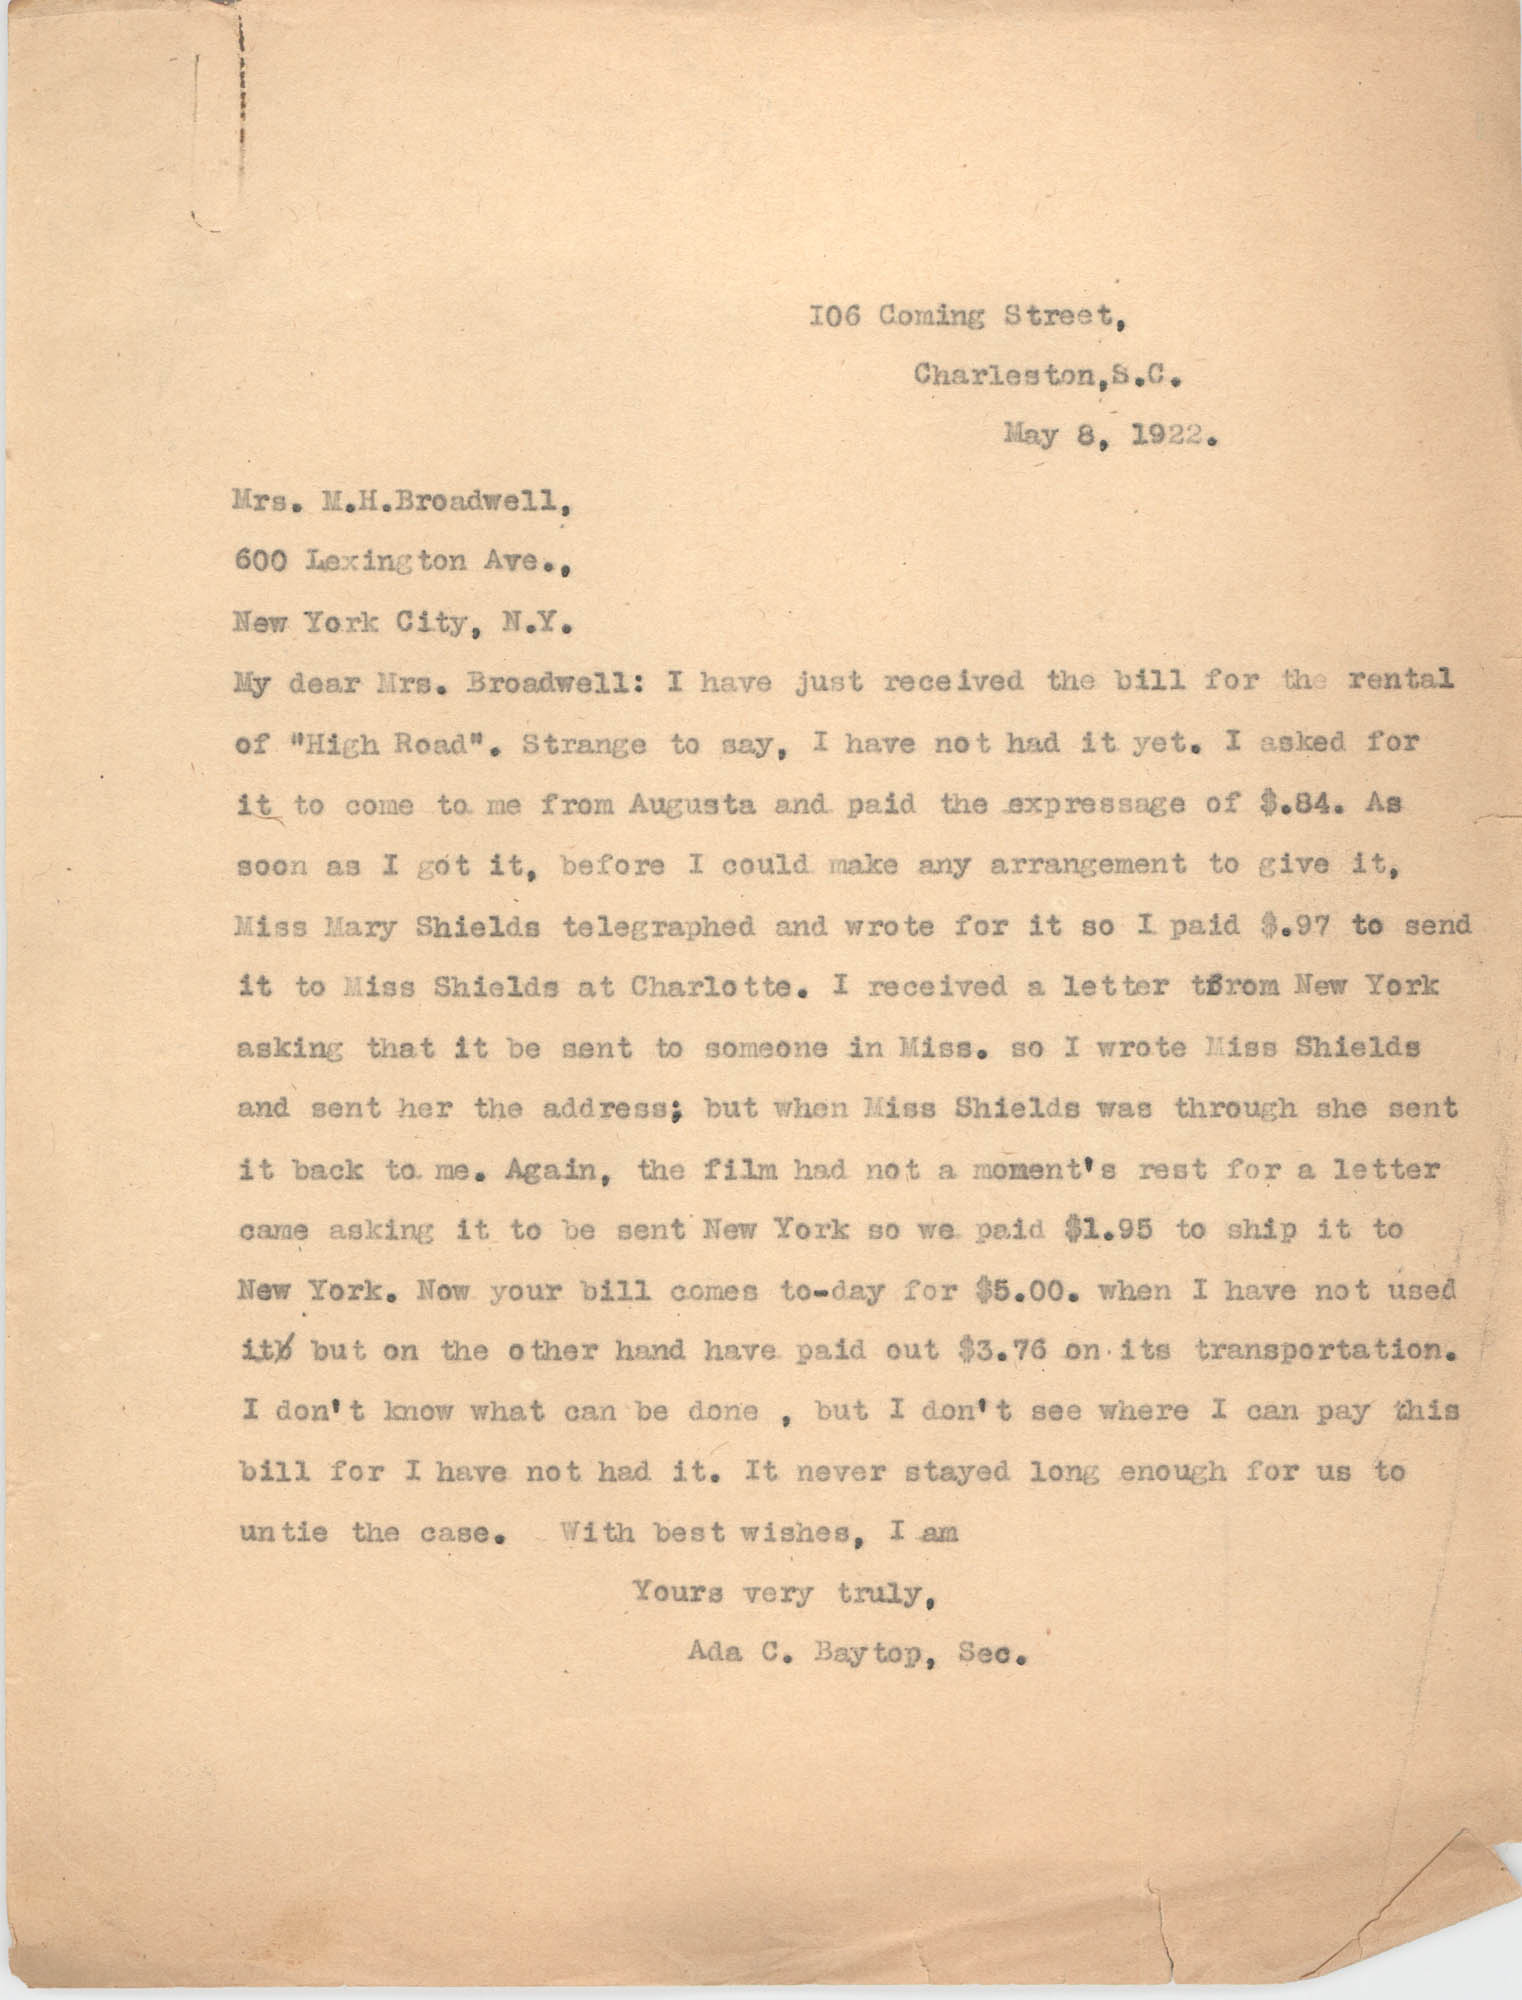 Letter from Ada C. Baytop to M. H. Broadwell, May 8, 1922